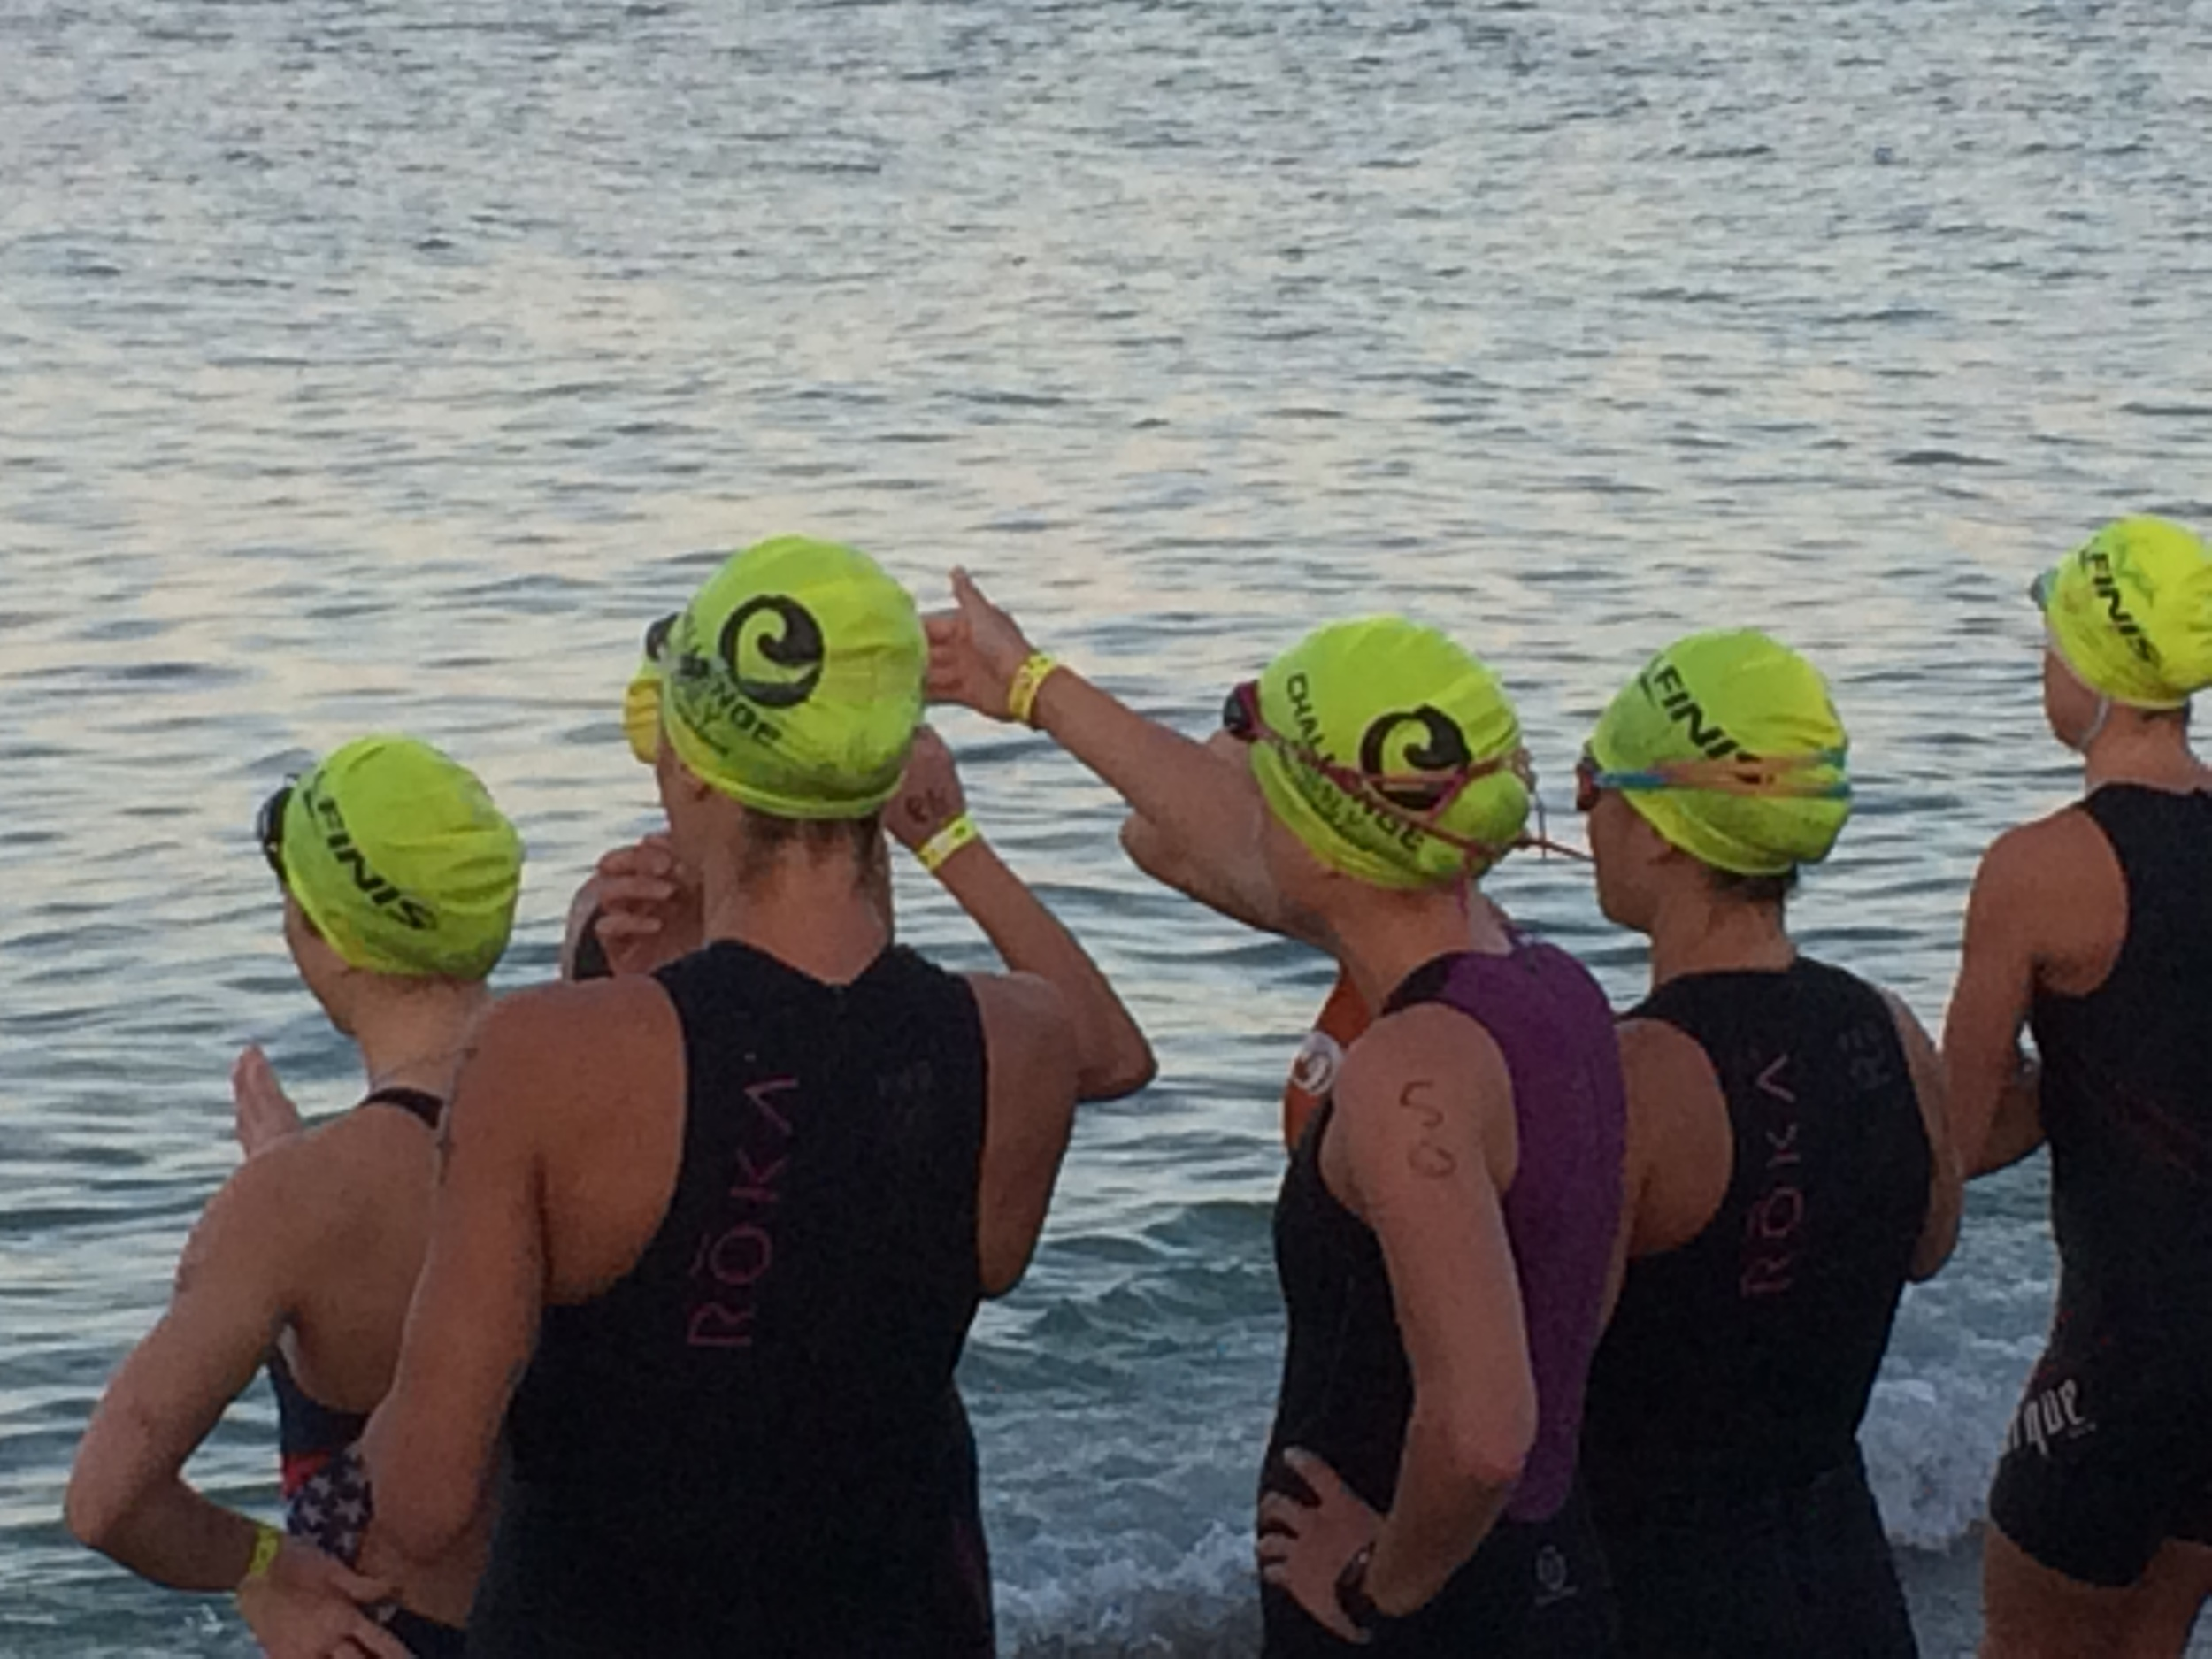 Carly (on the left) and I (number 50) scoping out the swim course.